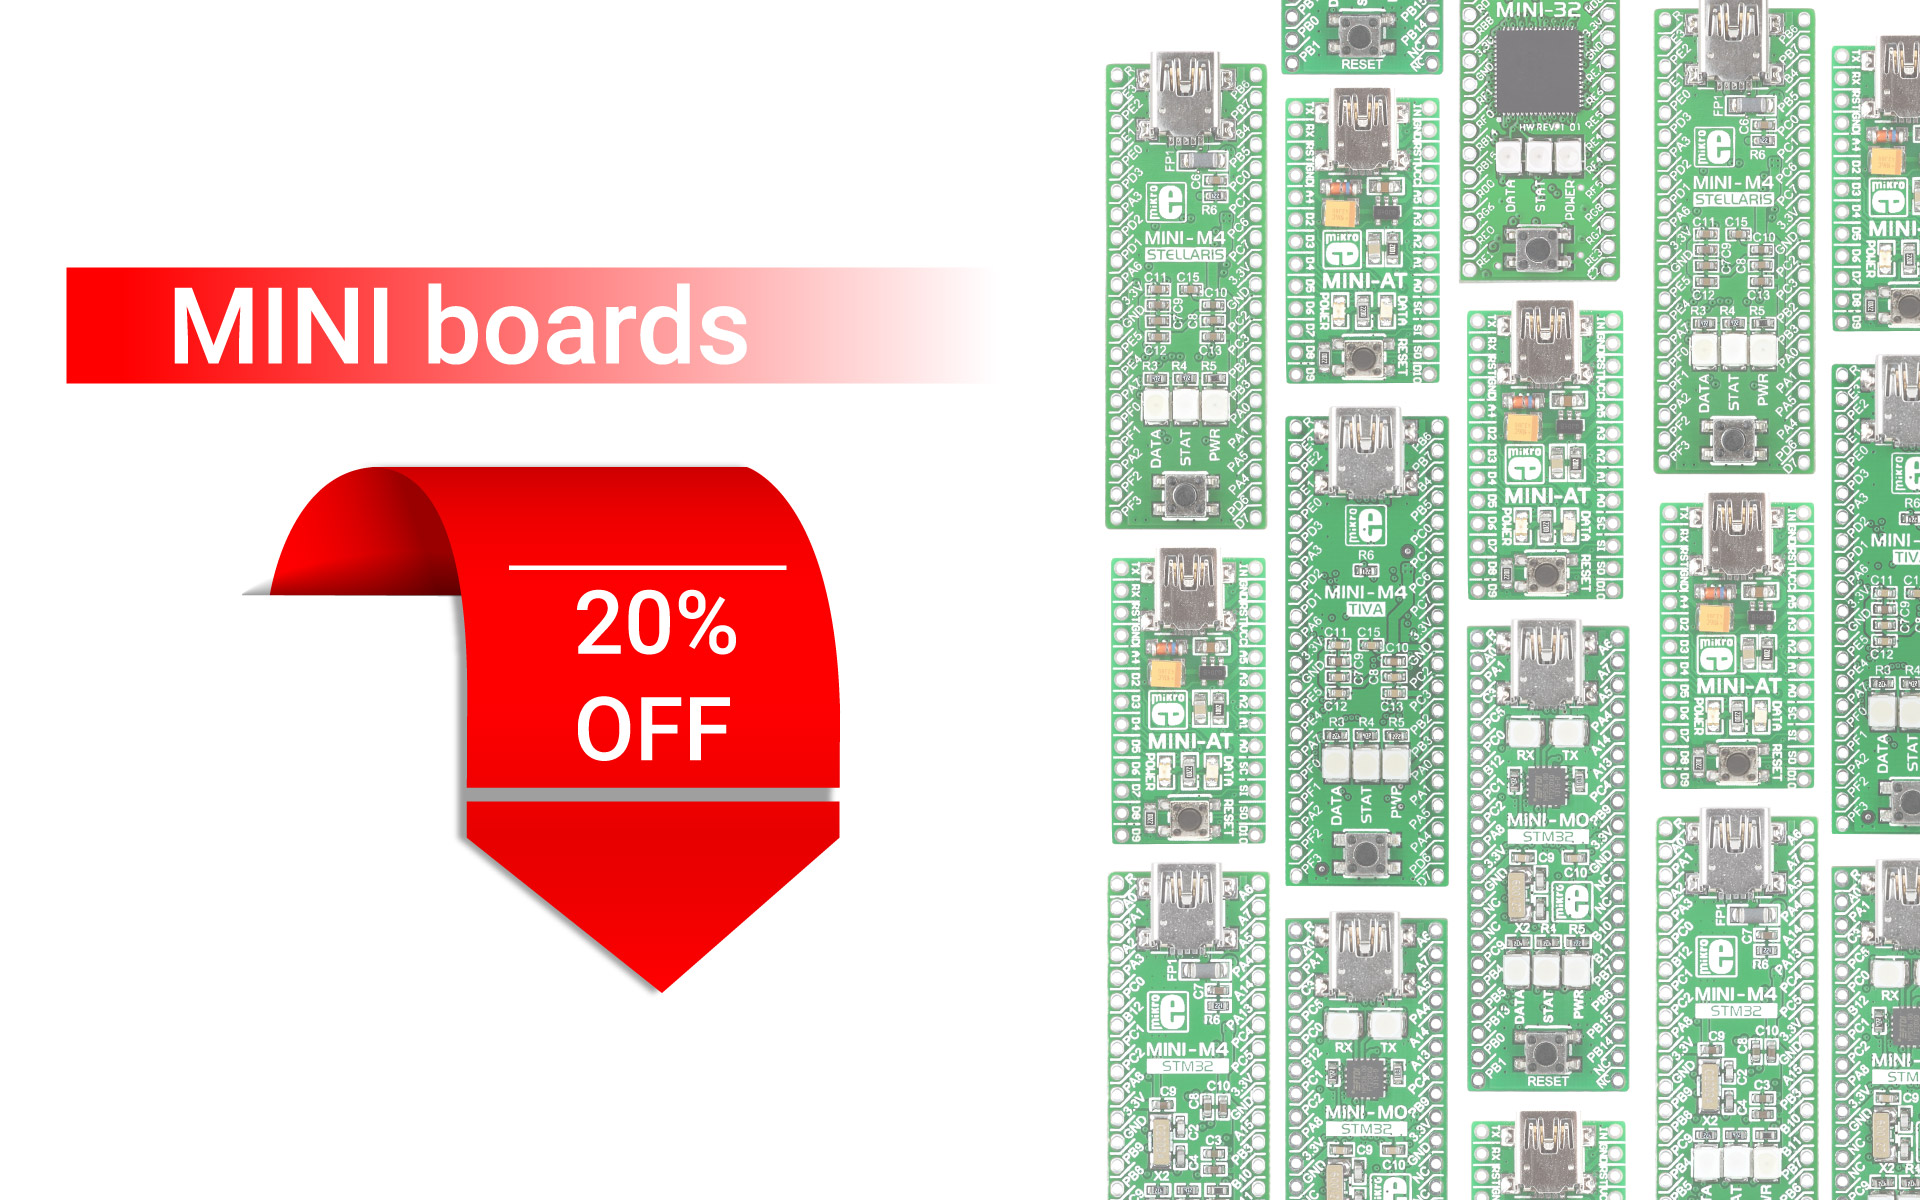 20% OFF on the MINI boards!